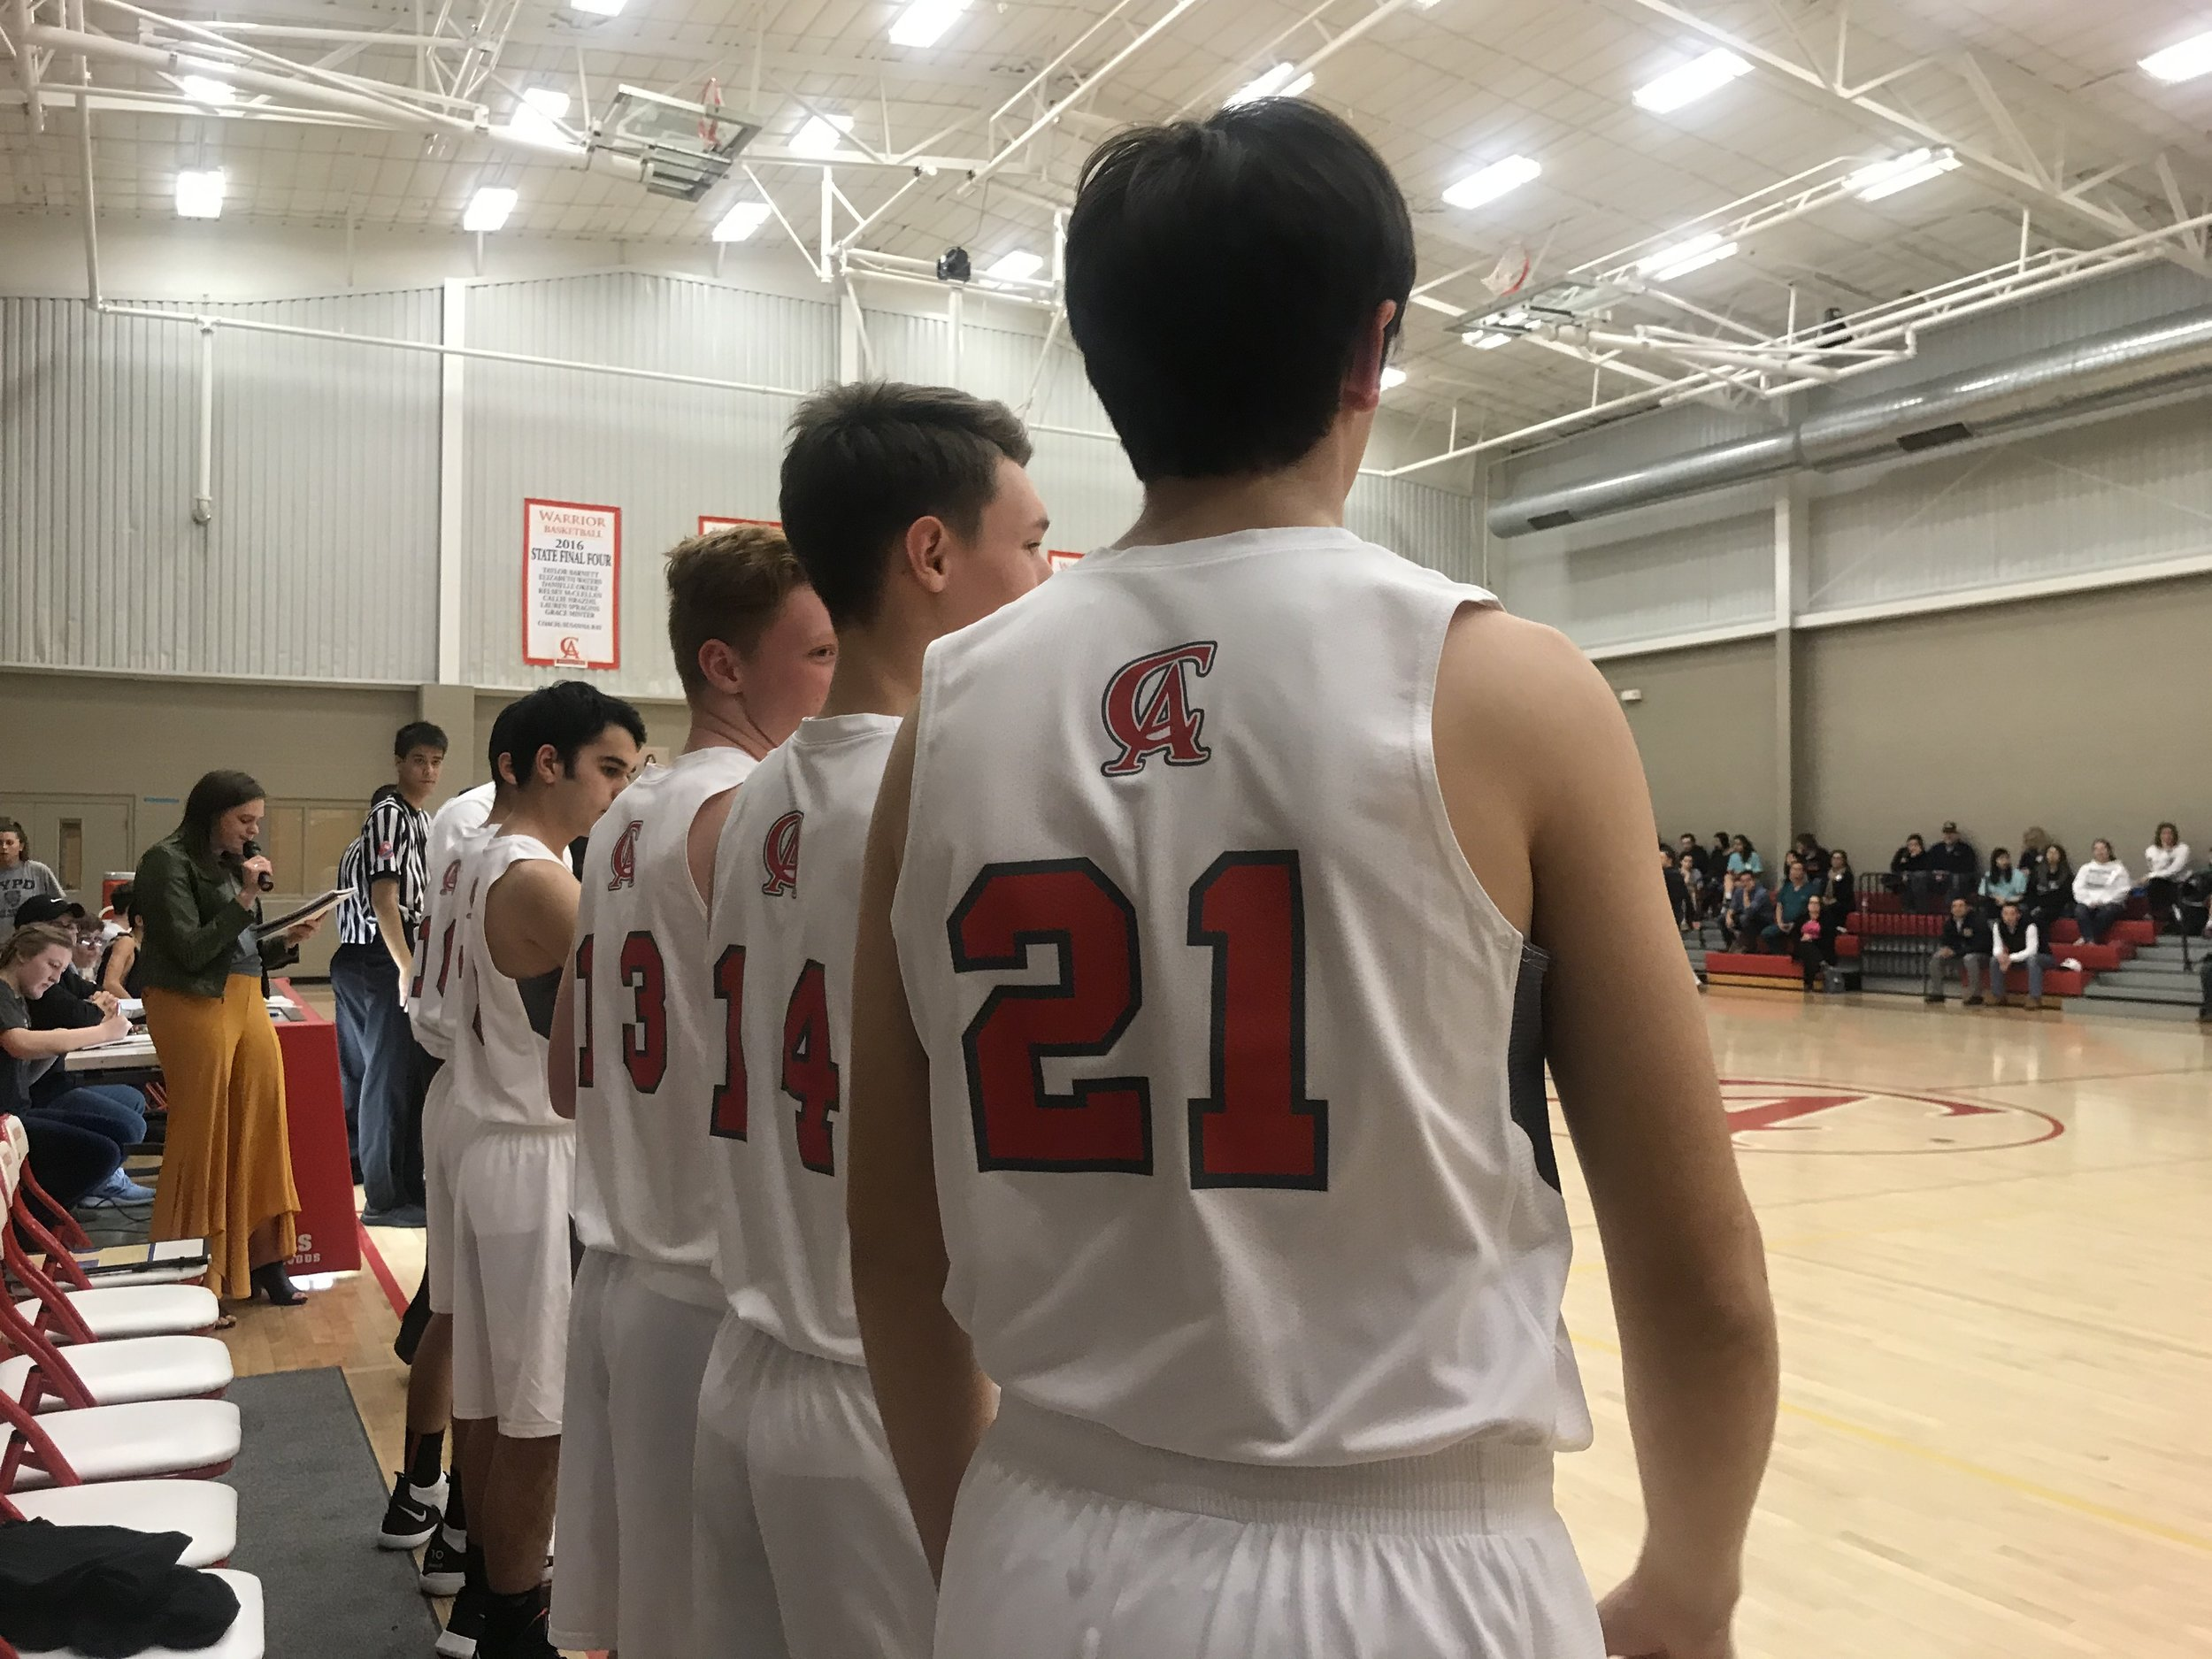 Christ-Academy-Boys-Basketball-team-2018-2019.jpg